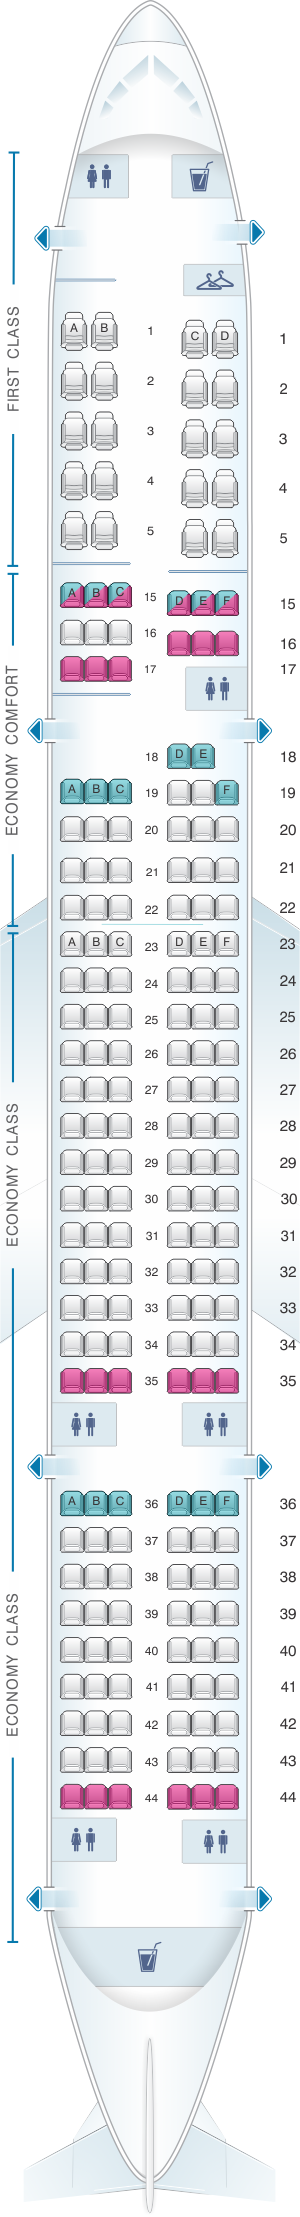 Seat map for Delta Air Lines Boeing B757 200 (75P)